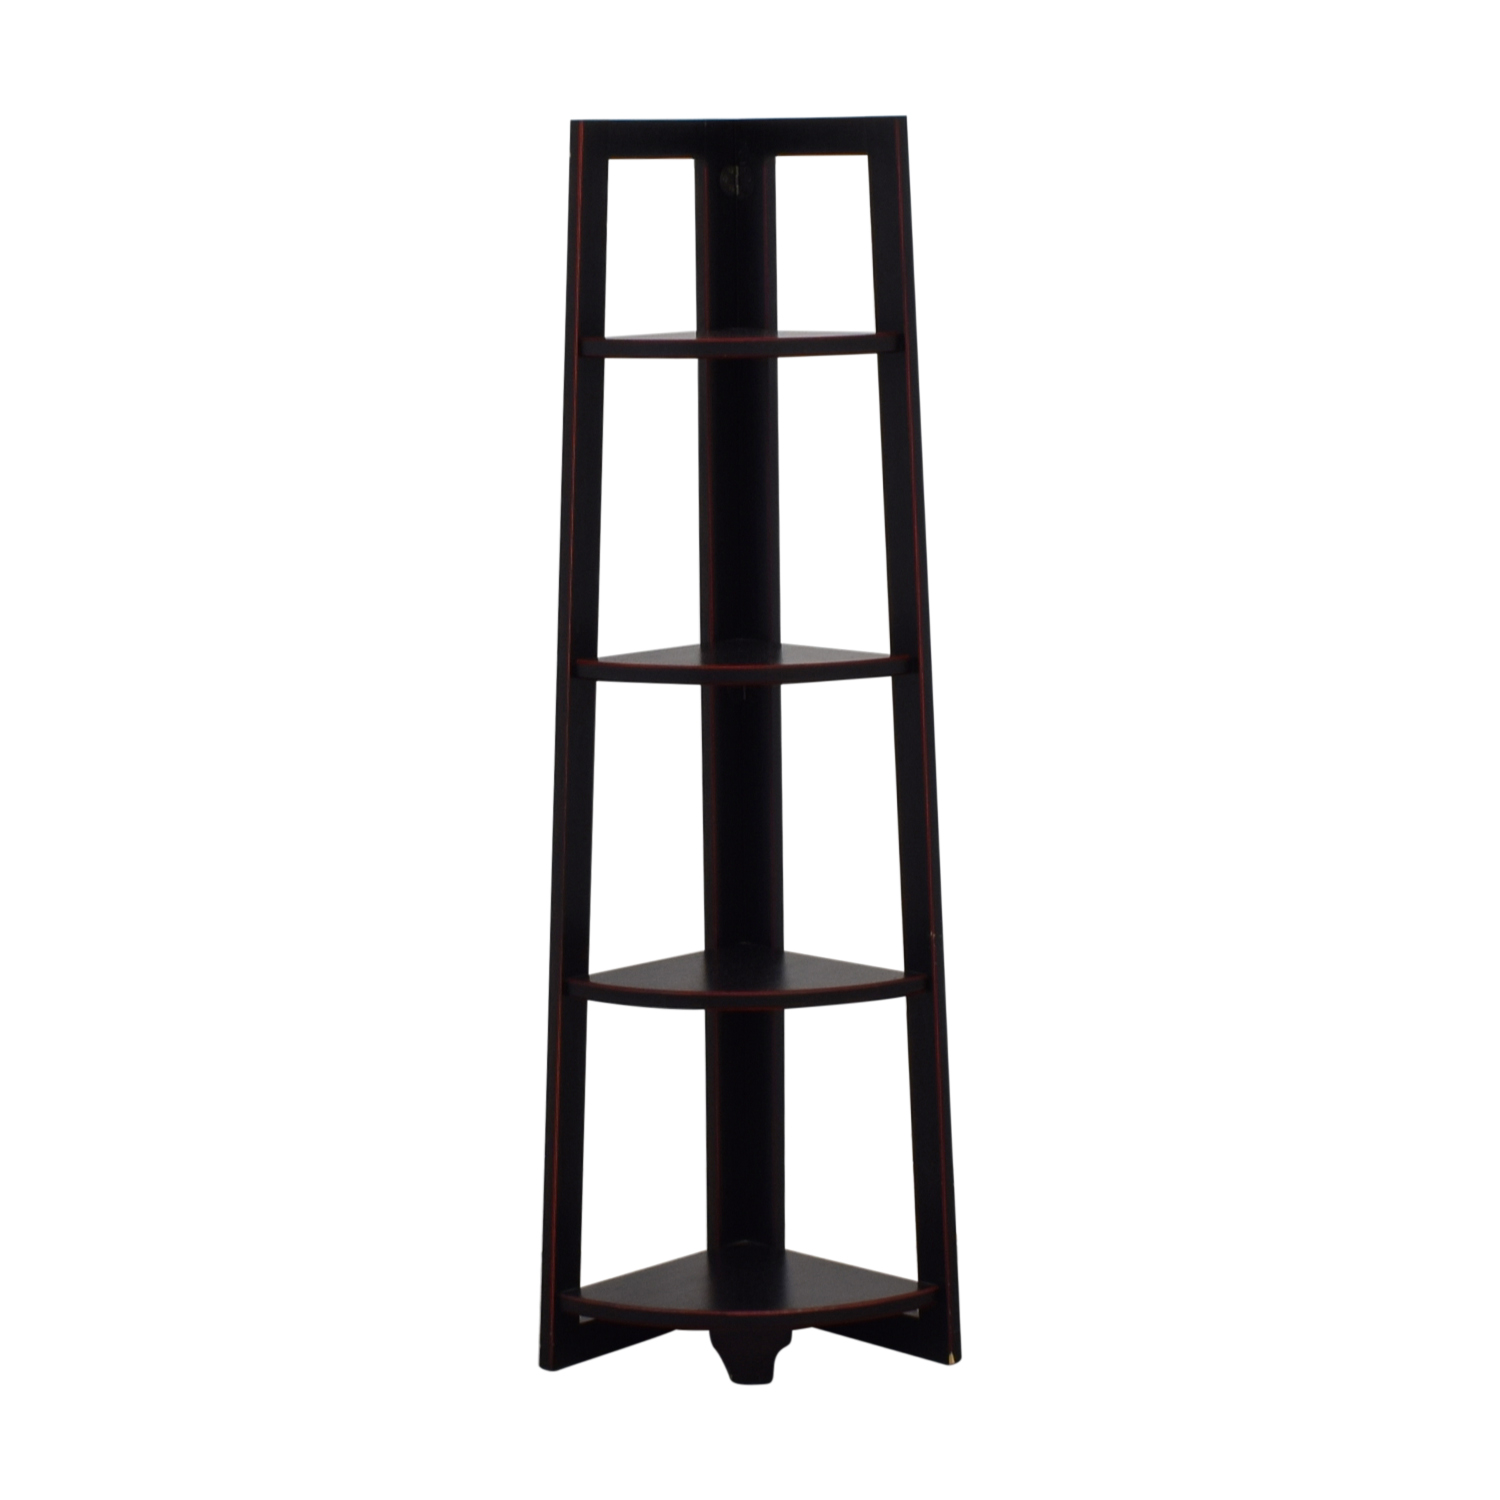 buy Pier 1 Imports Wood Corner Shelf Pier 1 Imports Bookcases & Shelving